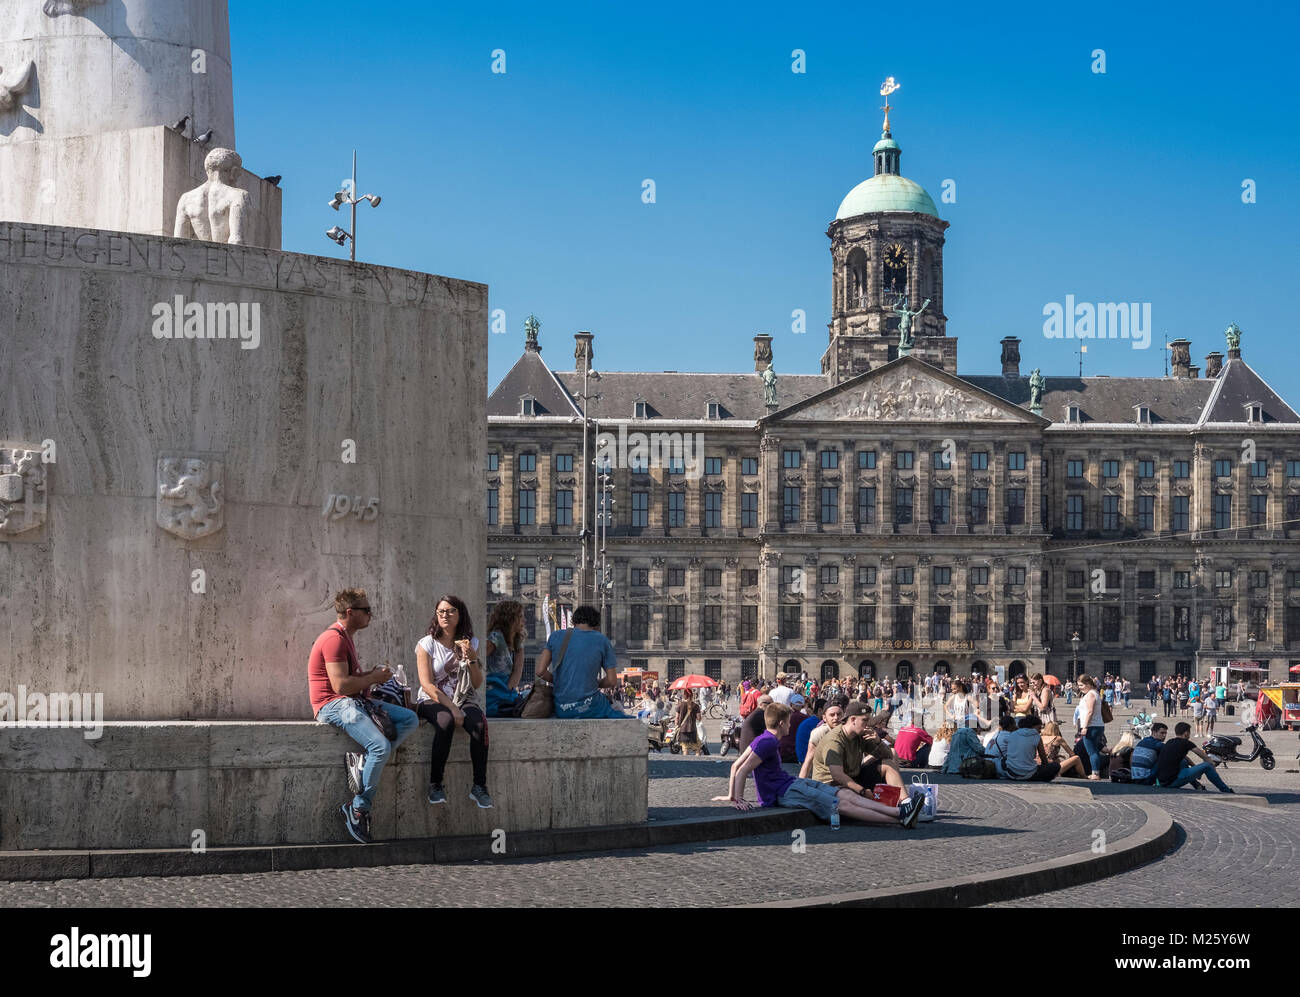 Popular tourist attractions of Royal Palace and National Monument, Dam Square, City Centre district, Amsterdam, - Stock Image